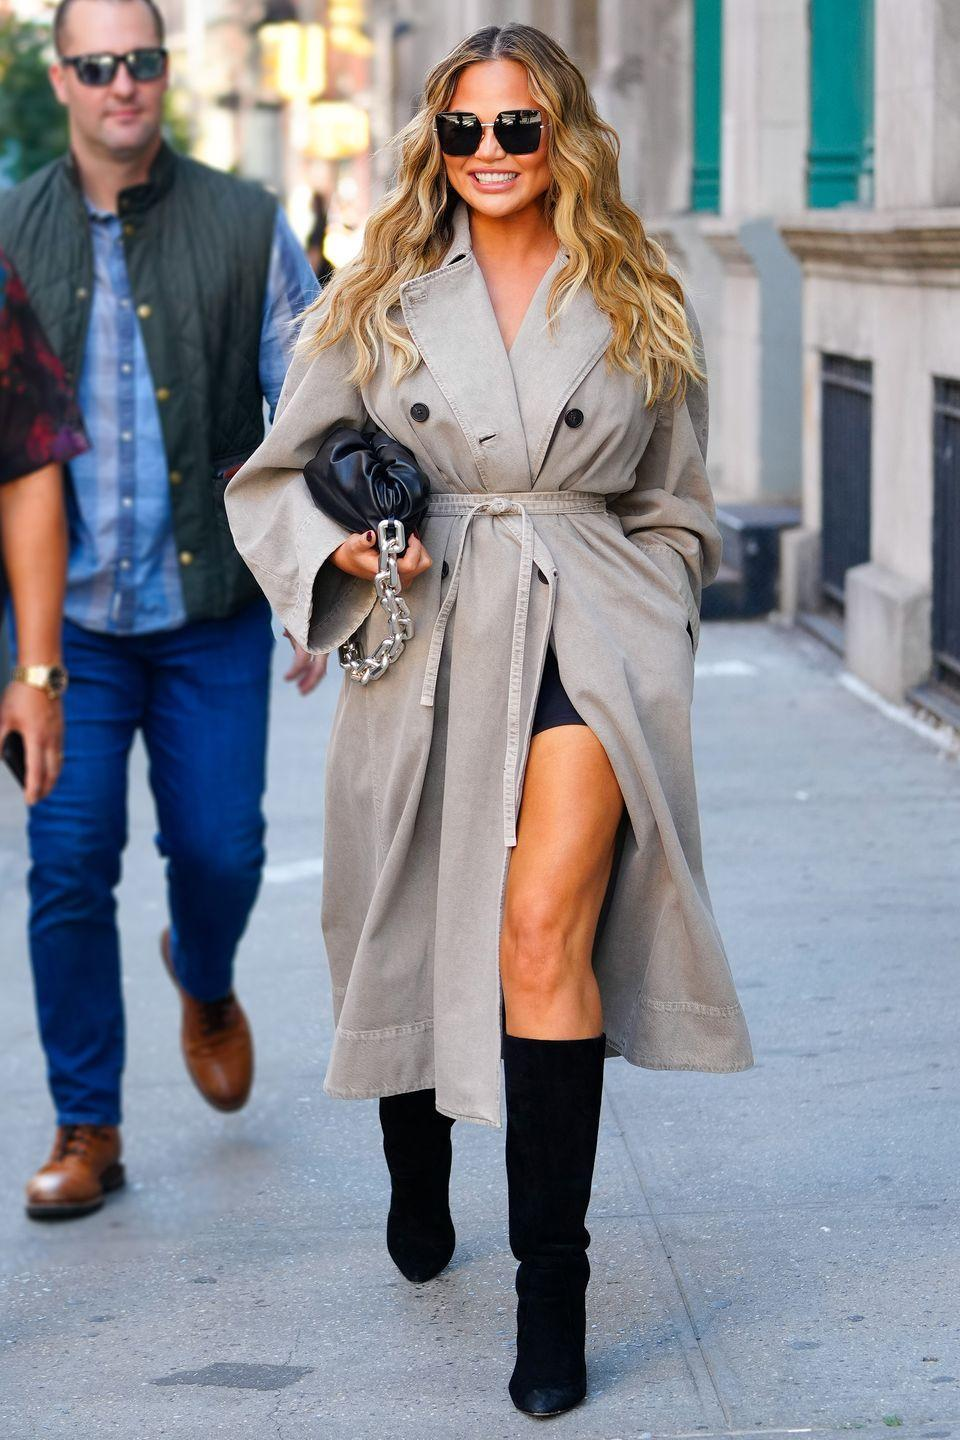 """<p><strong>27 September </strong></p><p>Chrissy Teigen dressed for autumn in a trench coat and knee-high boots.</p><p><a class=""""link rapid-noclick-resp"""" href=""""https://www.harpersbazaar.com/uk/fashion/what-to-wear/g16661706/best-trench-coats/"""" rel=""""nofollow noopener"""" target=""""_blank"""" data-ylk=""""slk:SHOP THE BEST TRENCH COATS"""">SHOP THE BEST TRENCH COATS</a></p>"""